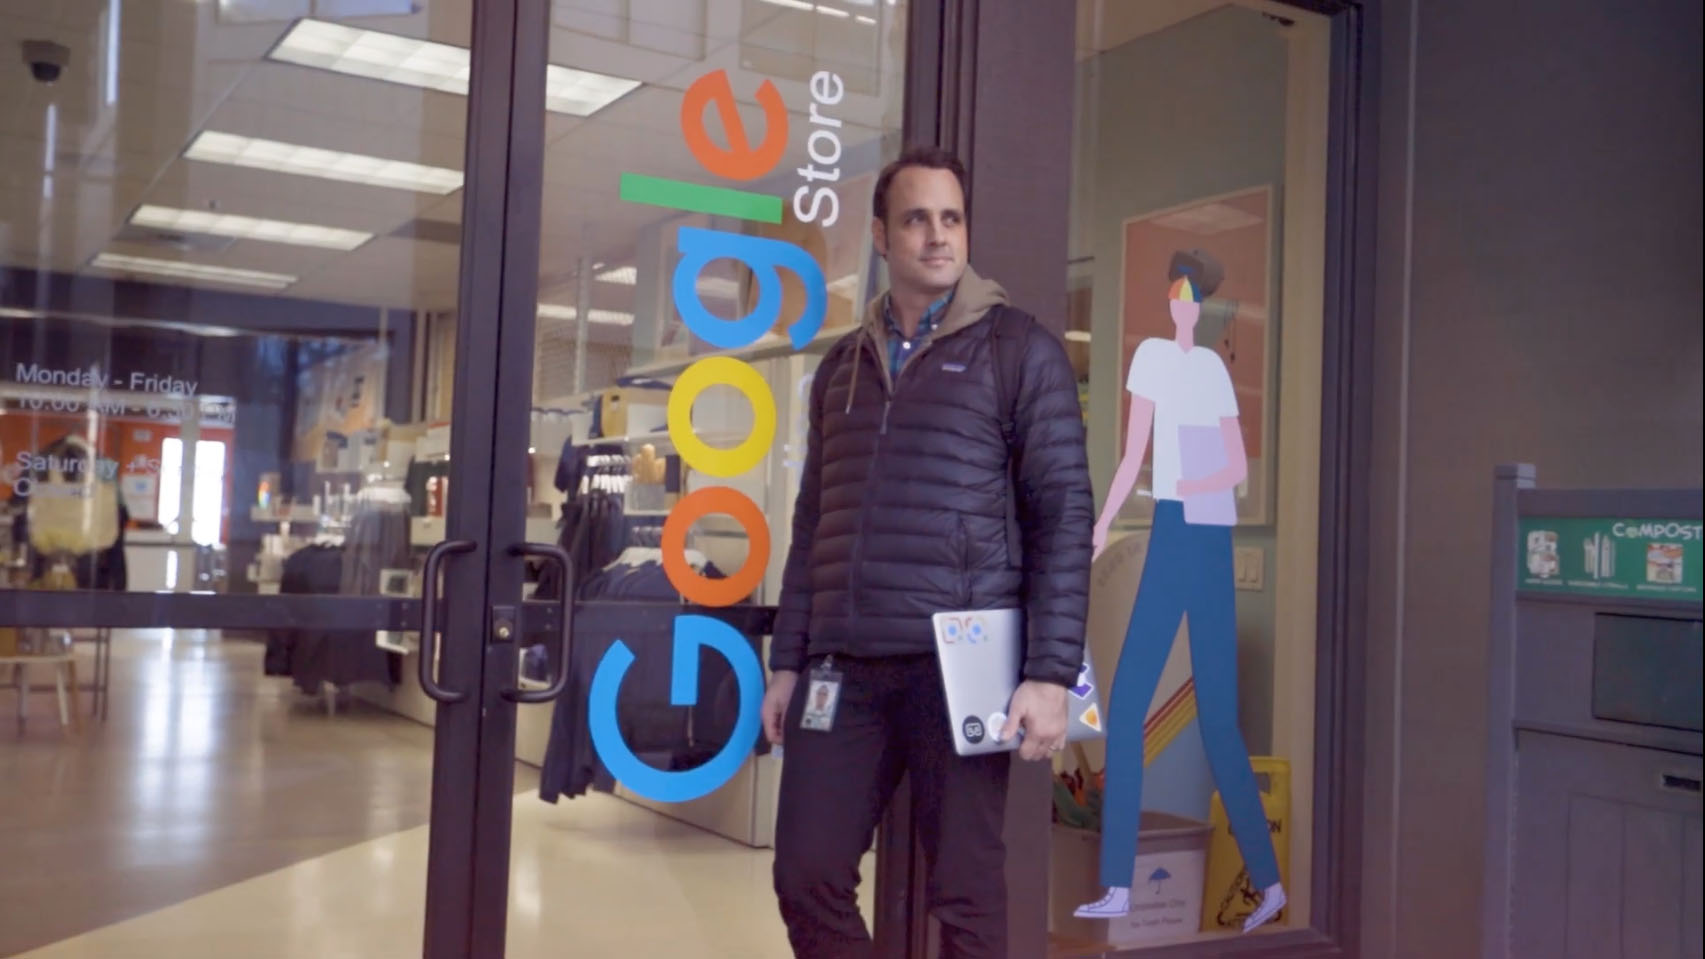 Chris standing in front of the Google Storefront